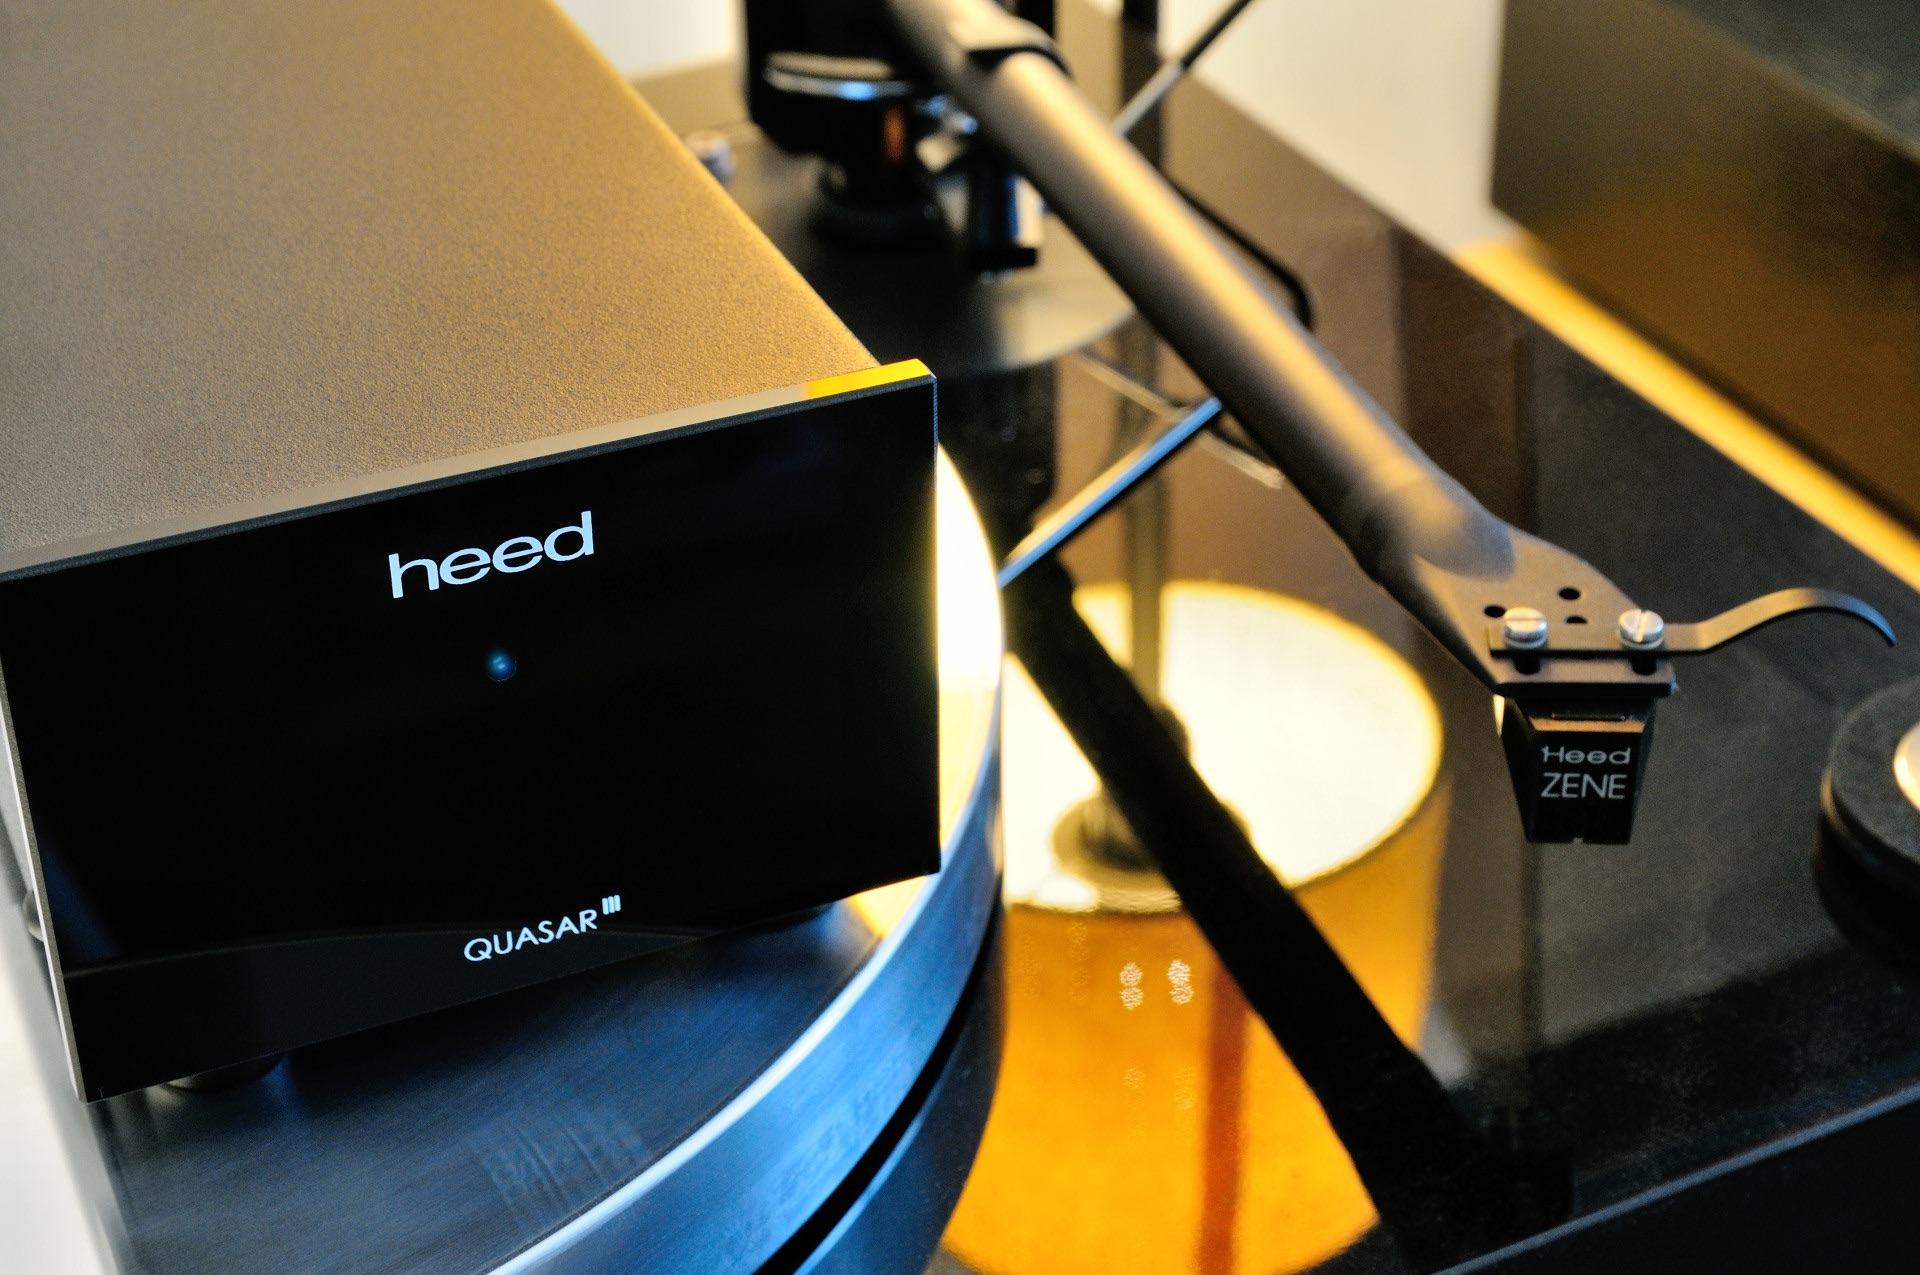 Heed Audio Quasar